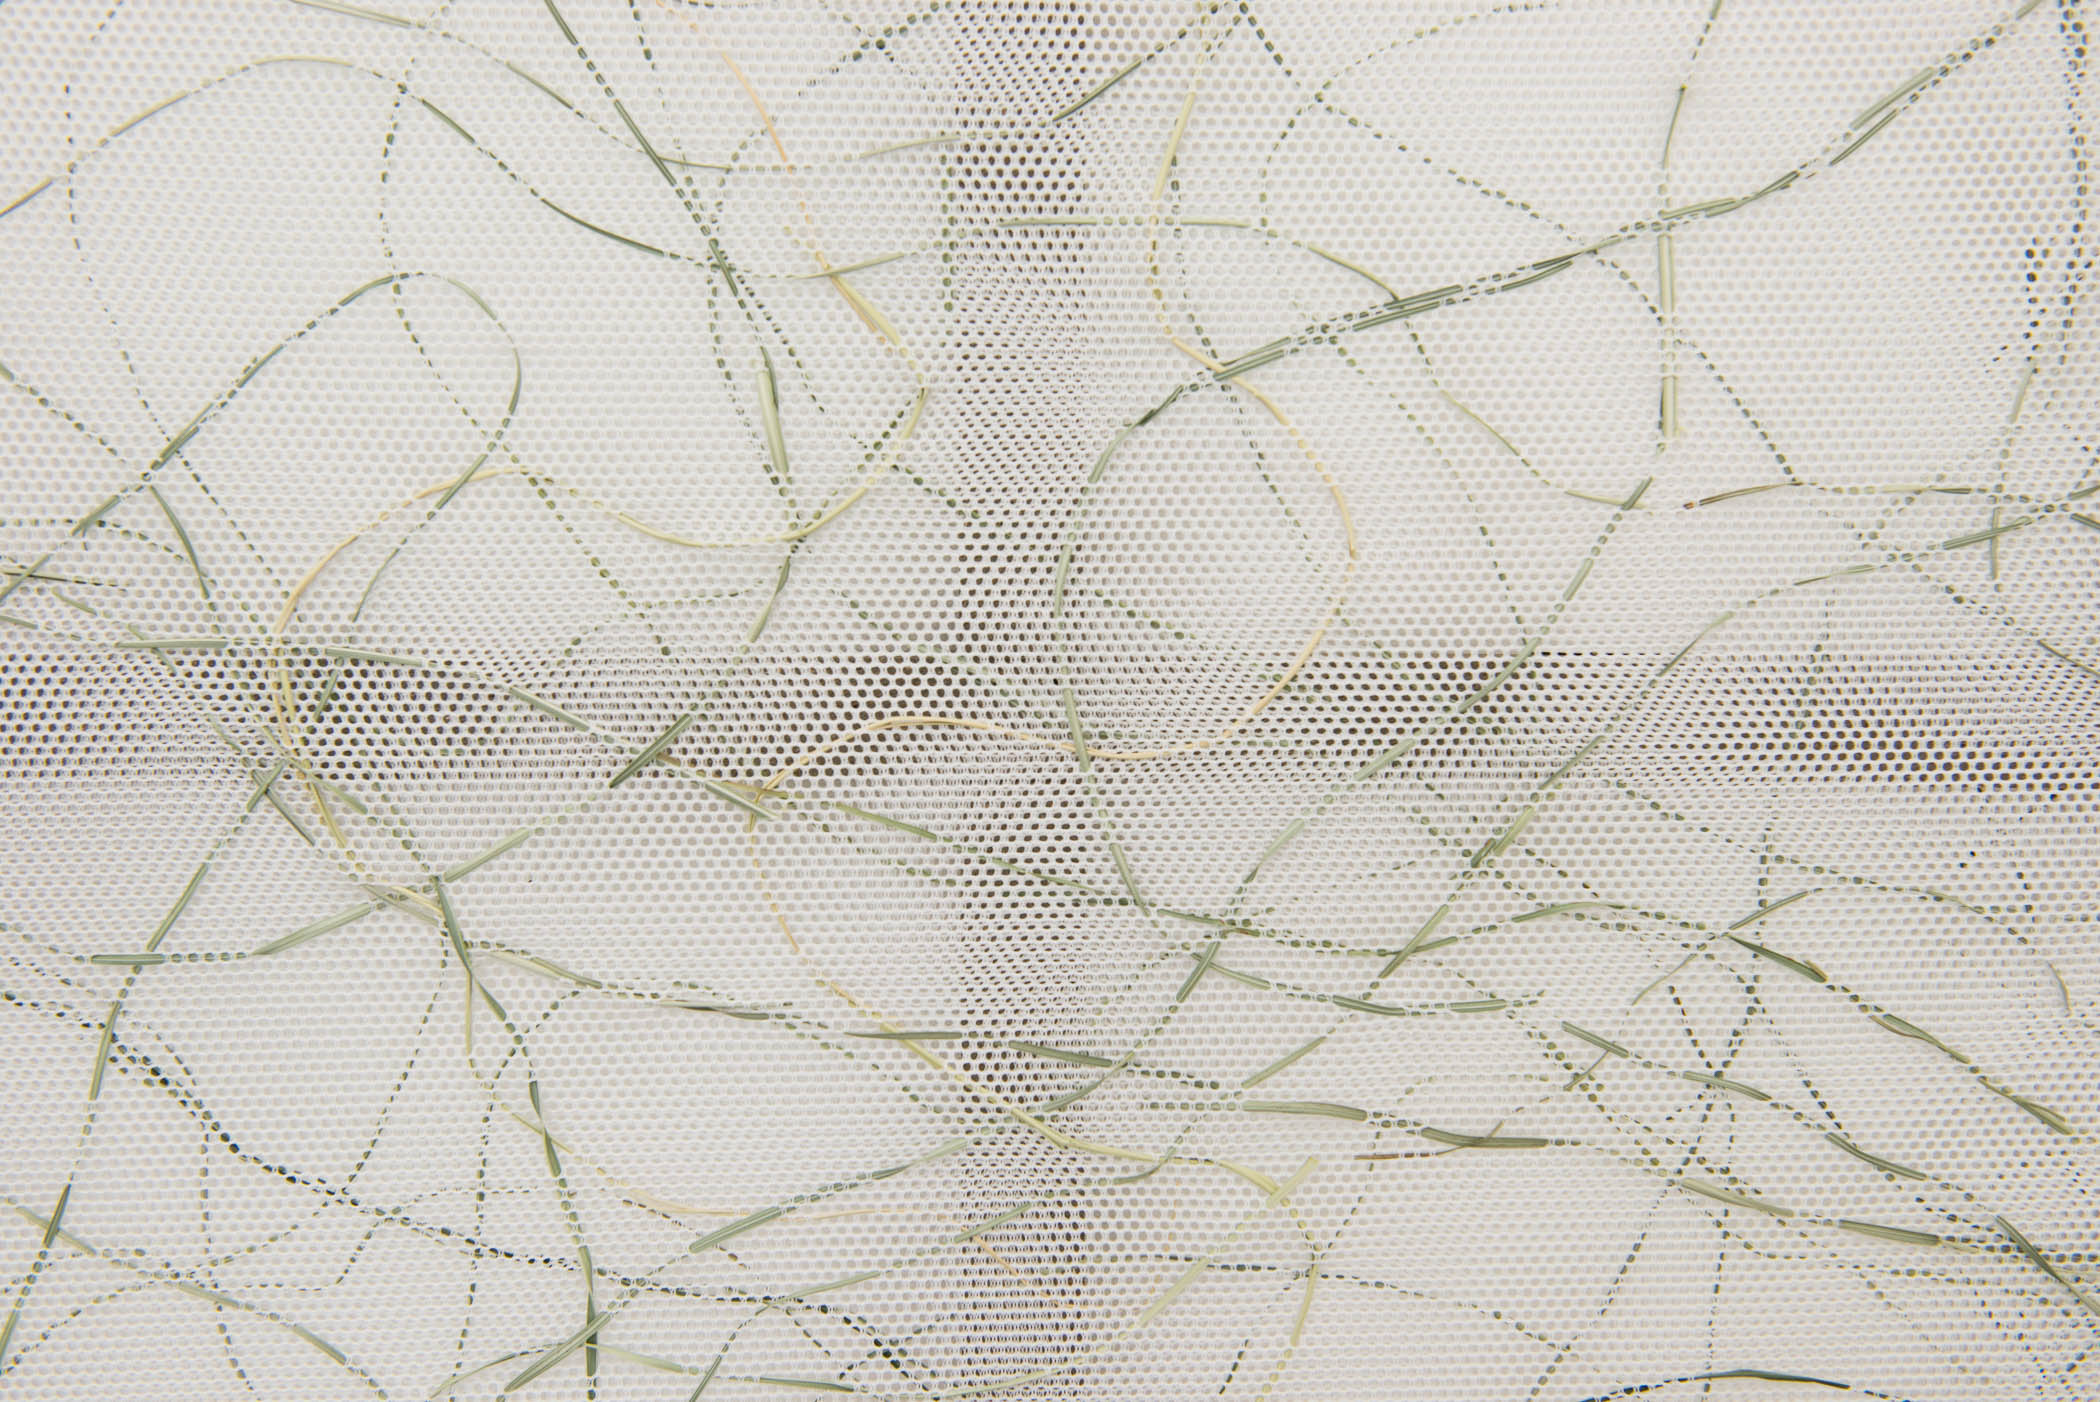 Stephen Nachtigall Net Grama (Detail), 2015 Mesh textile, grass, and composite wood